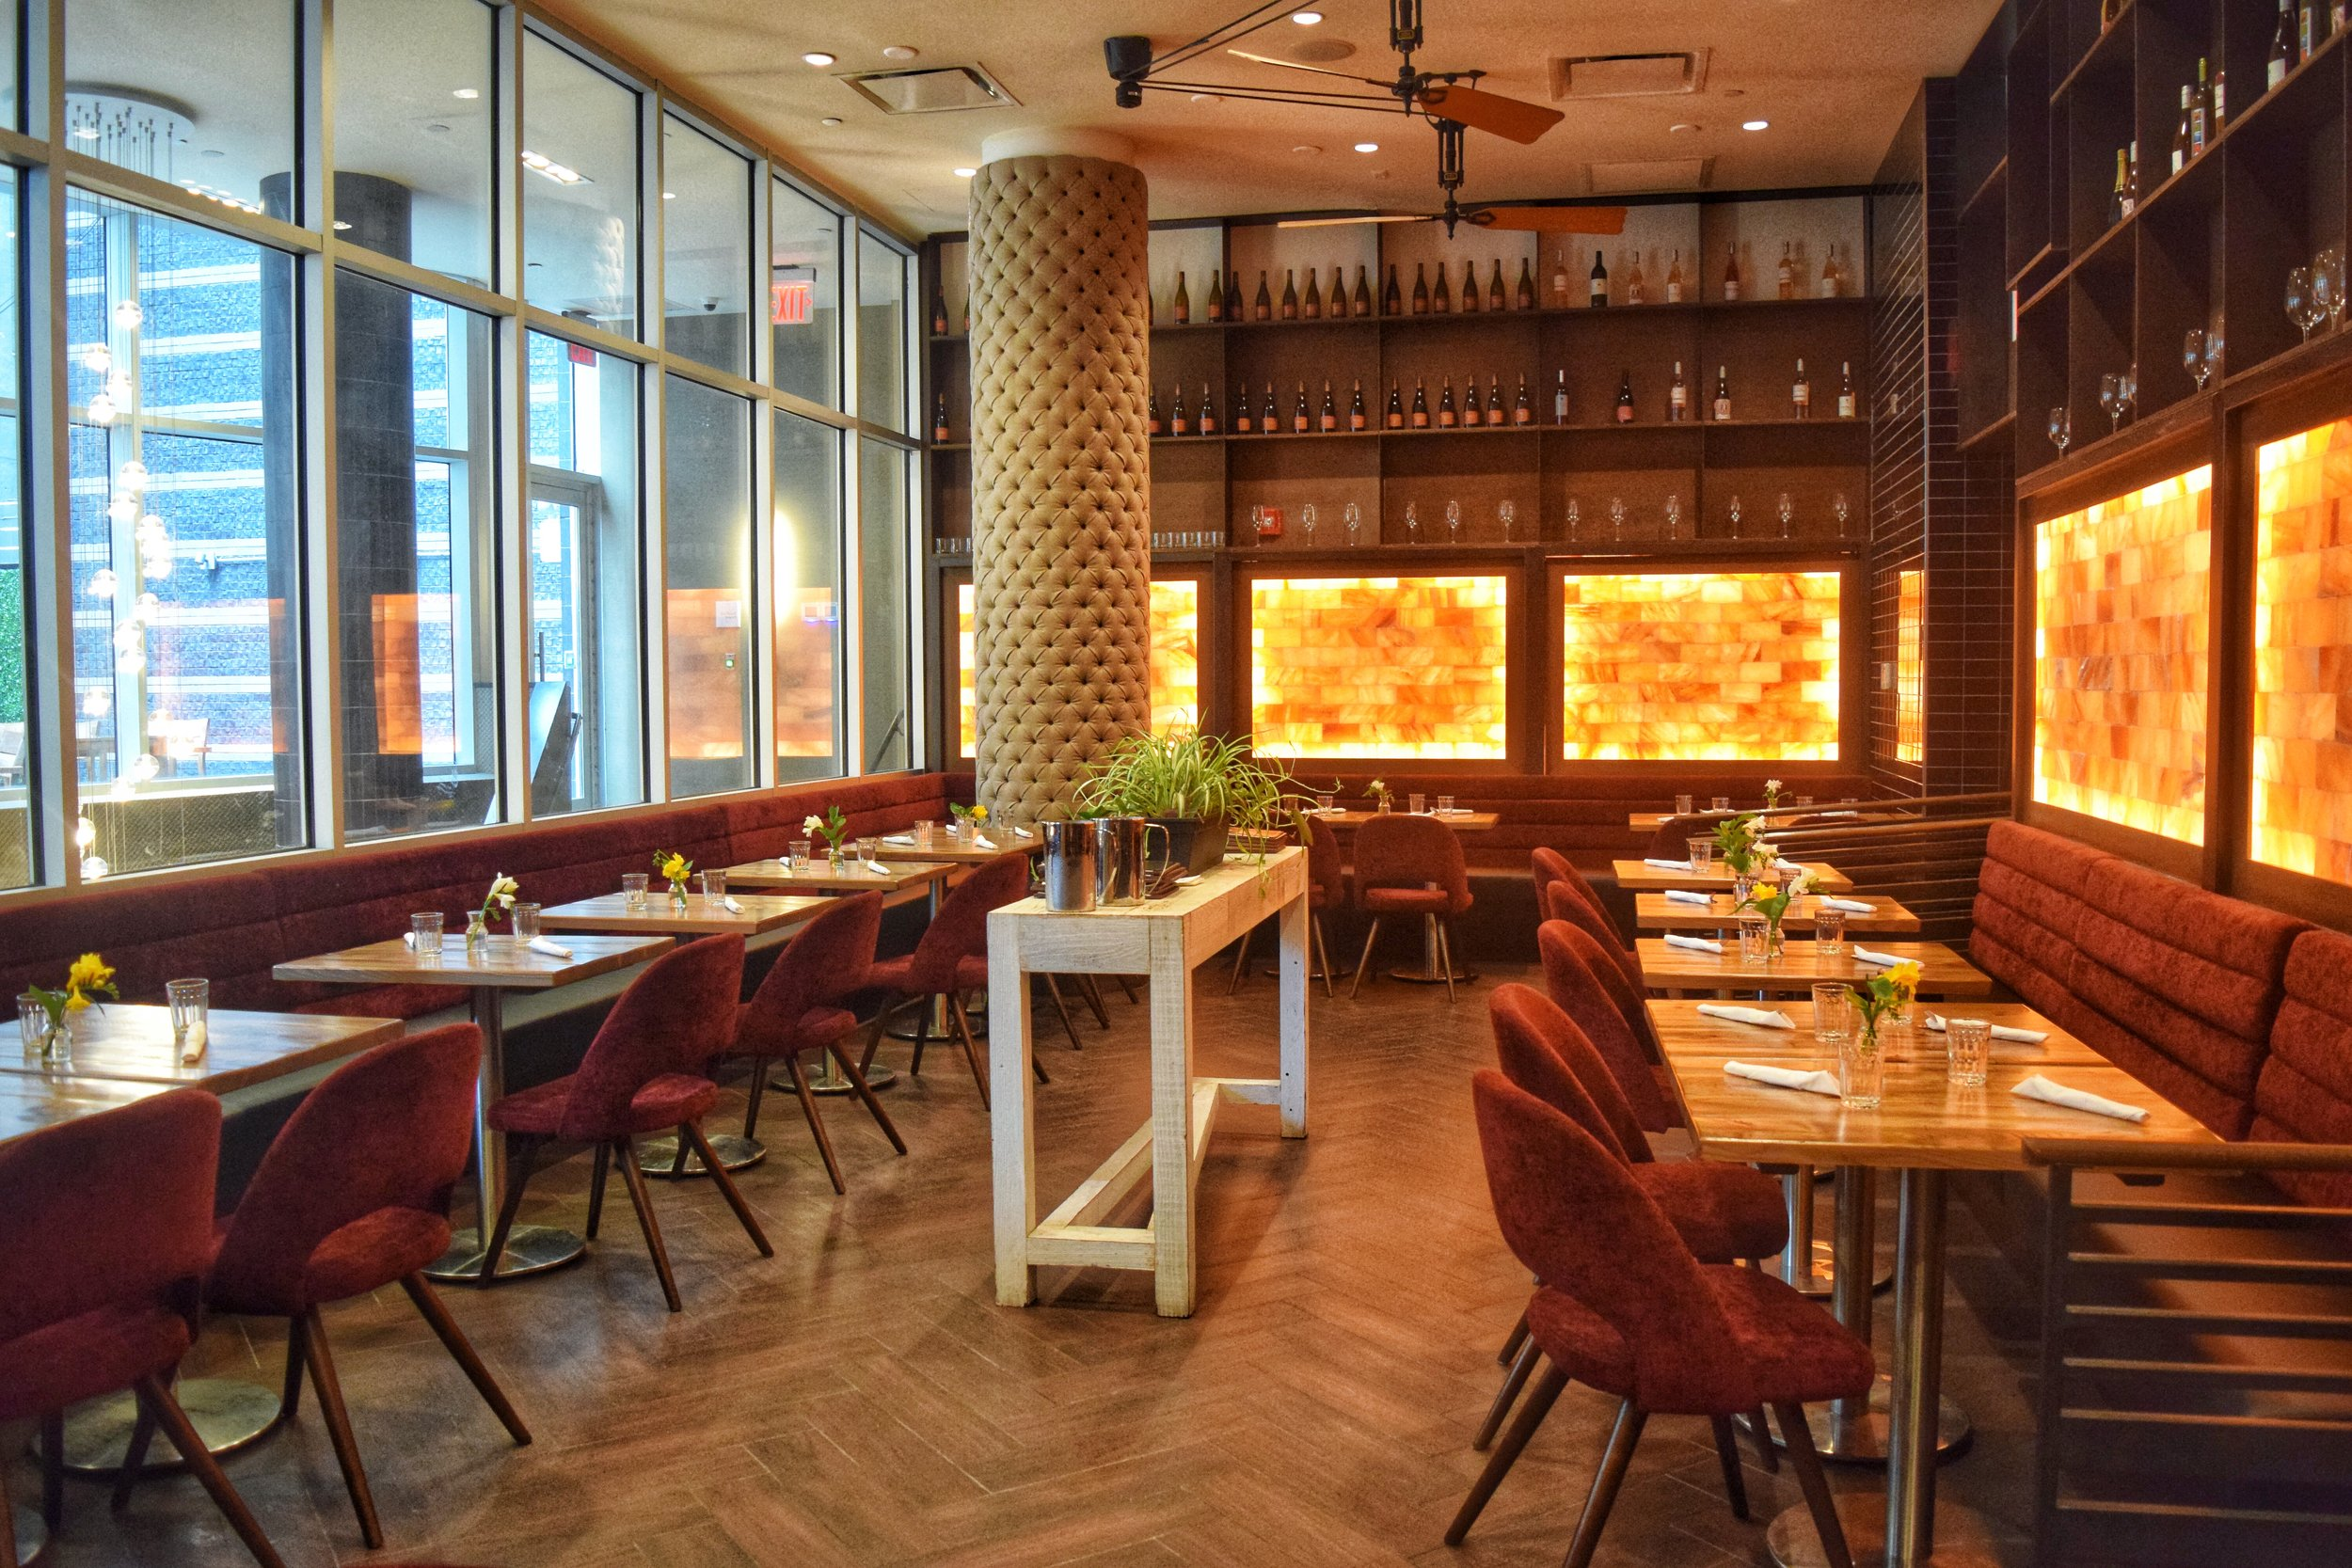 Classic restaurant - Located on the first floor of a hotel in Downtown Brooklyn. Partial or Full Buyout. It doesn't